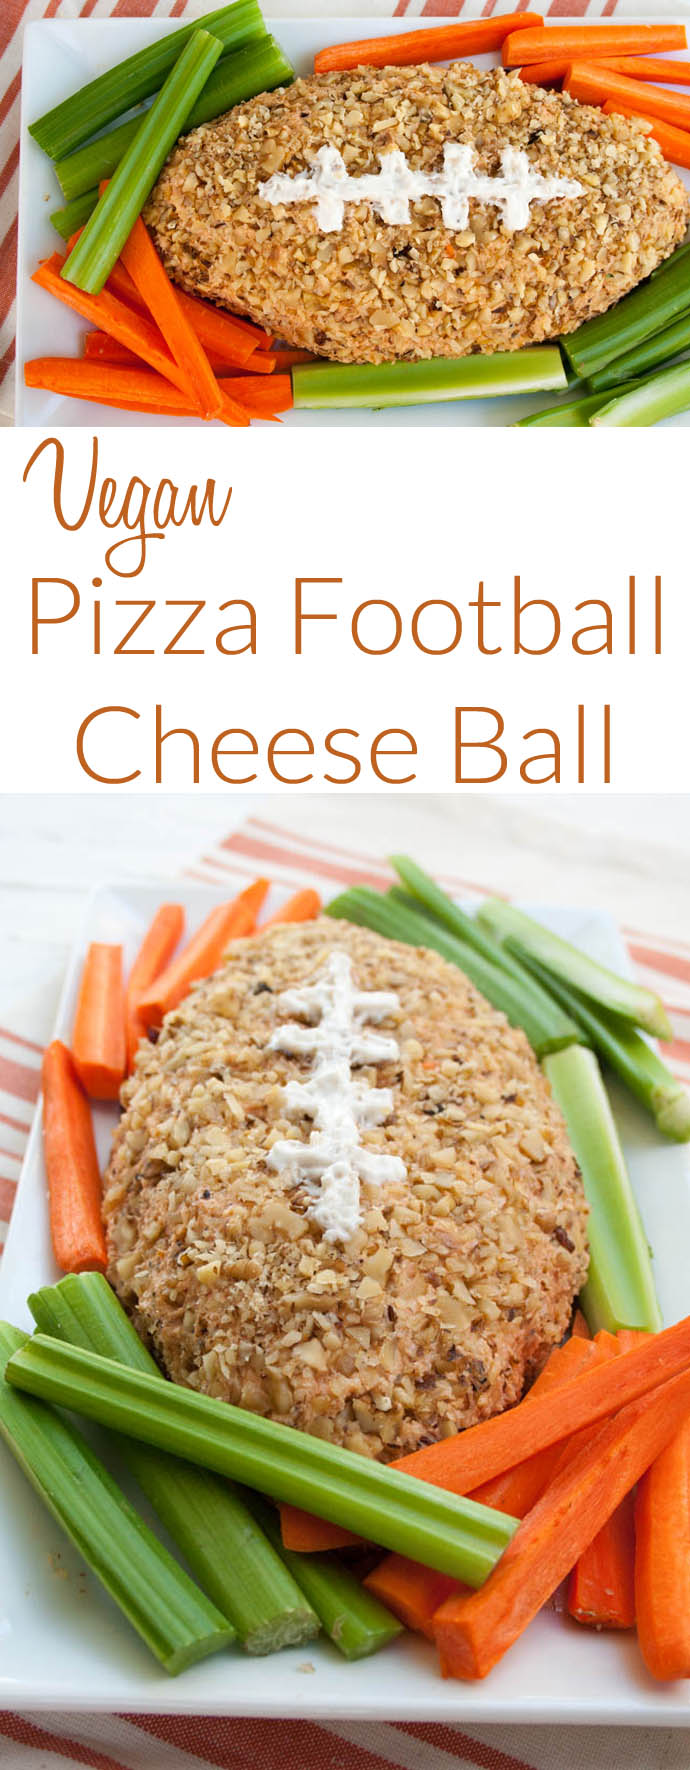 Vegan Pizza Football Cheese Ball (gluten free) - This recipe will be the hit of your Super Bowl party! It is easy to make, and sure to impress!